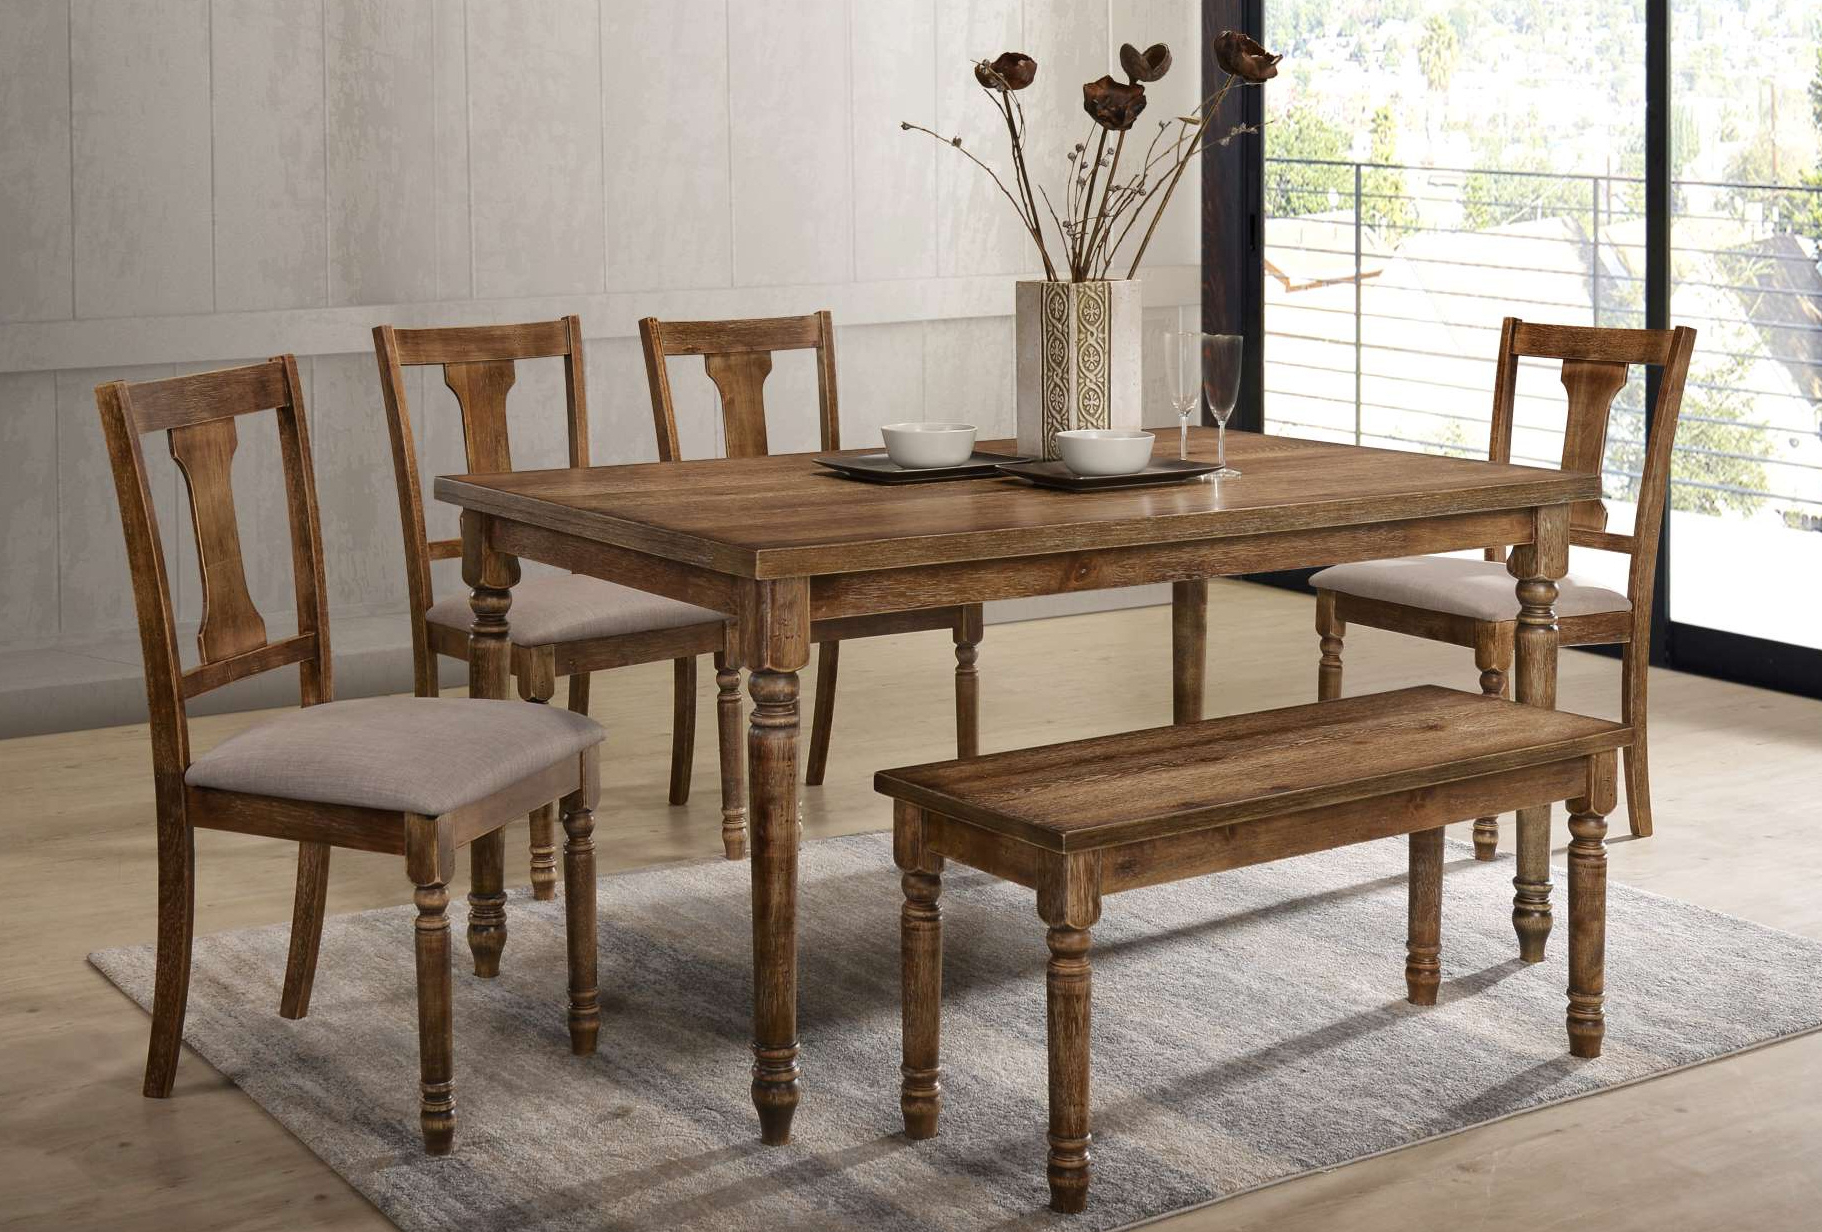 Wood Dinettes And Kitchen Sets Regarding Most Popular Charcoal Transitional 6 Seating Rectangular Dining Tables (Gallery 27 of 30)